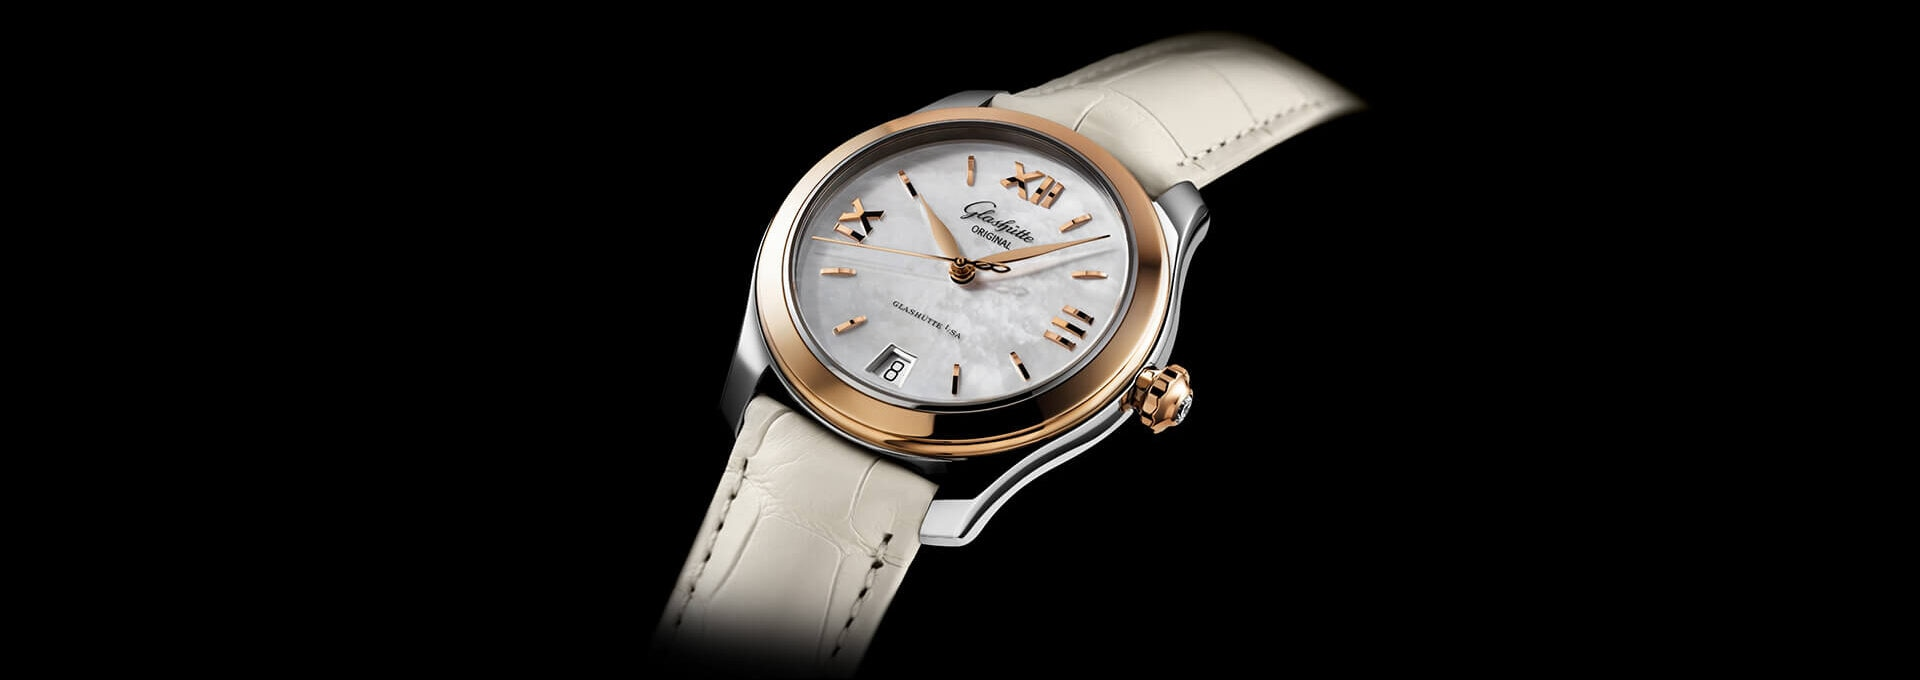 Glashuette_Original-W13922090644-Detail-4